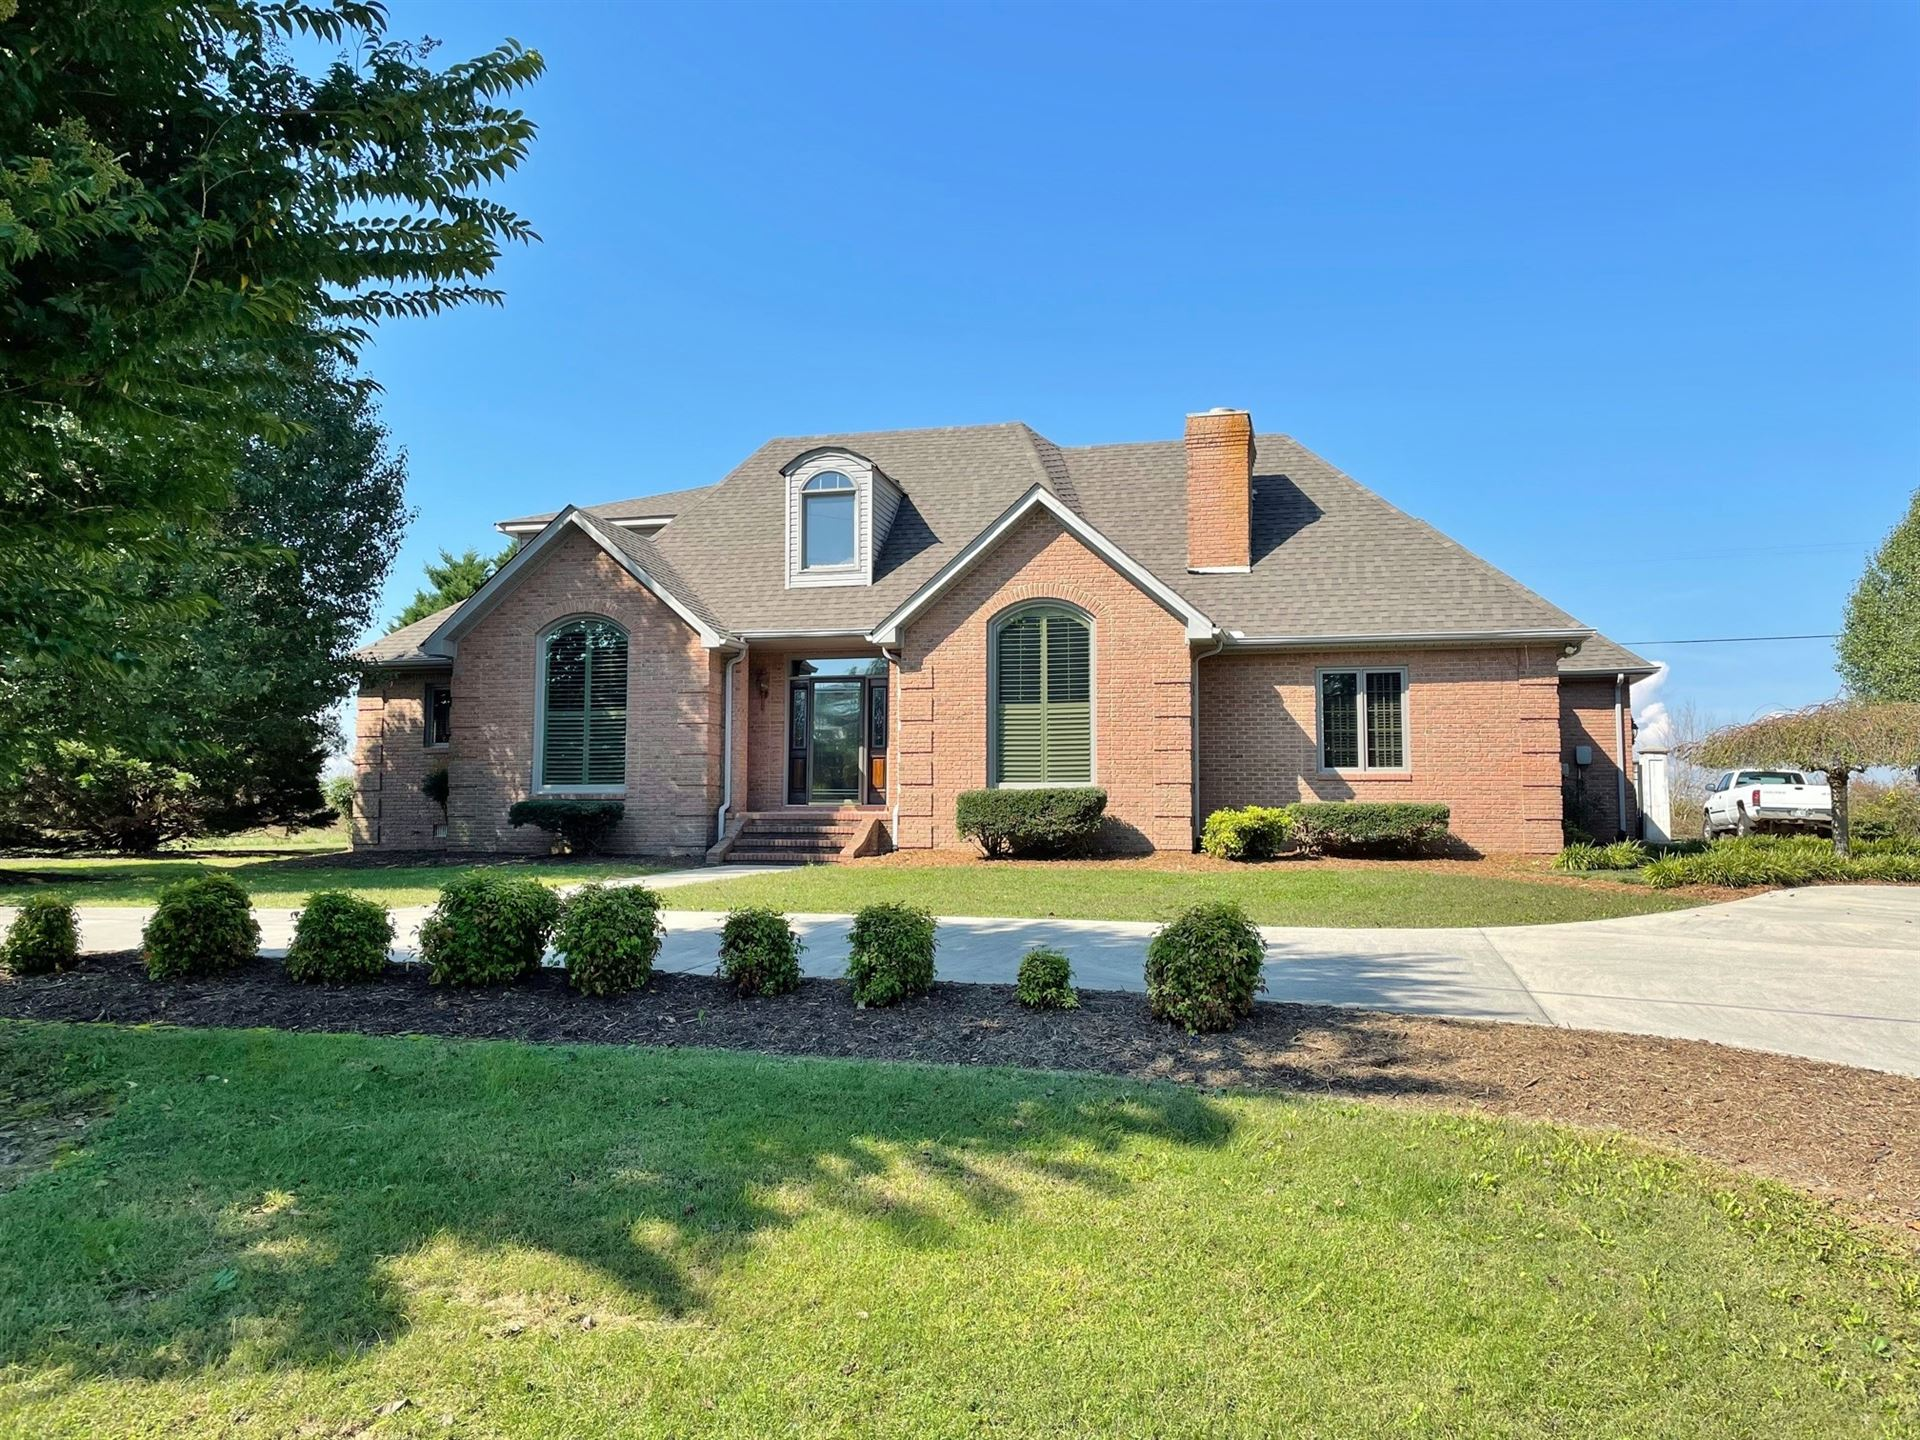 268 Twin Lakes Dr, McMinnville, TN 37110 - MLS#: 2287361